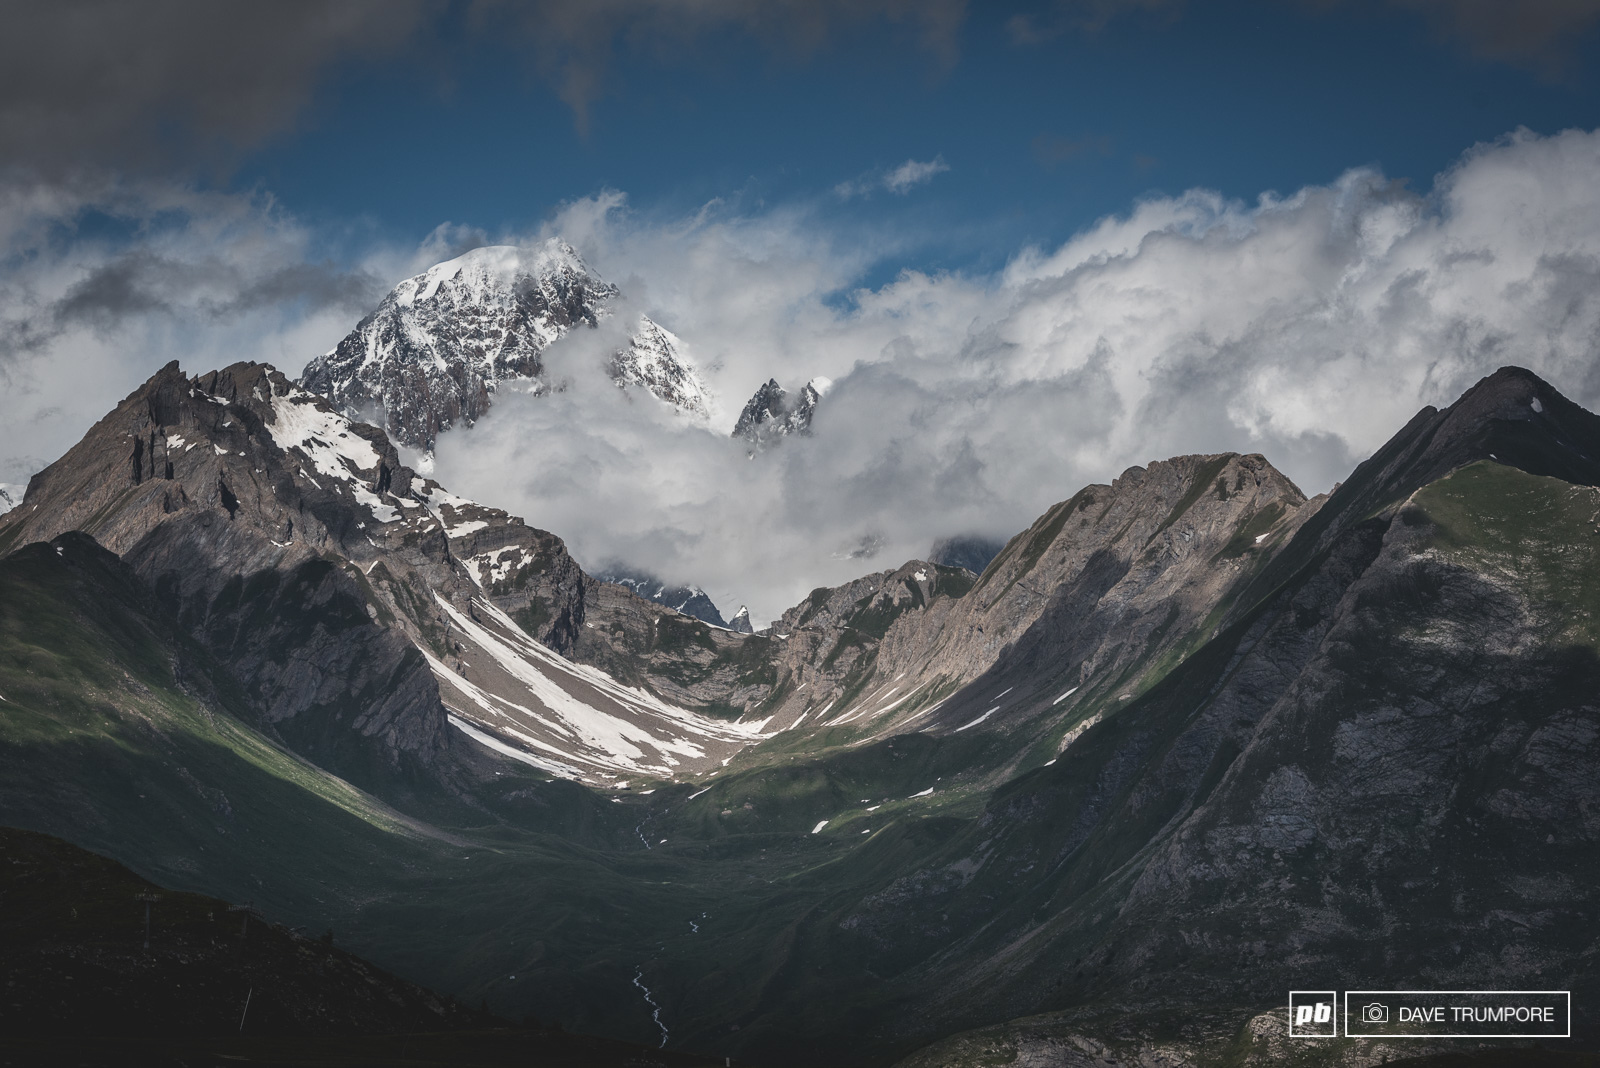 Just for a second and not a moment longer Monte Bianco finally appeared through the veil of clouds. Stages 2 and 5 both share this magnificent view right out of the start gate.